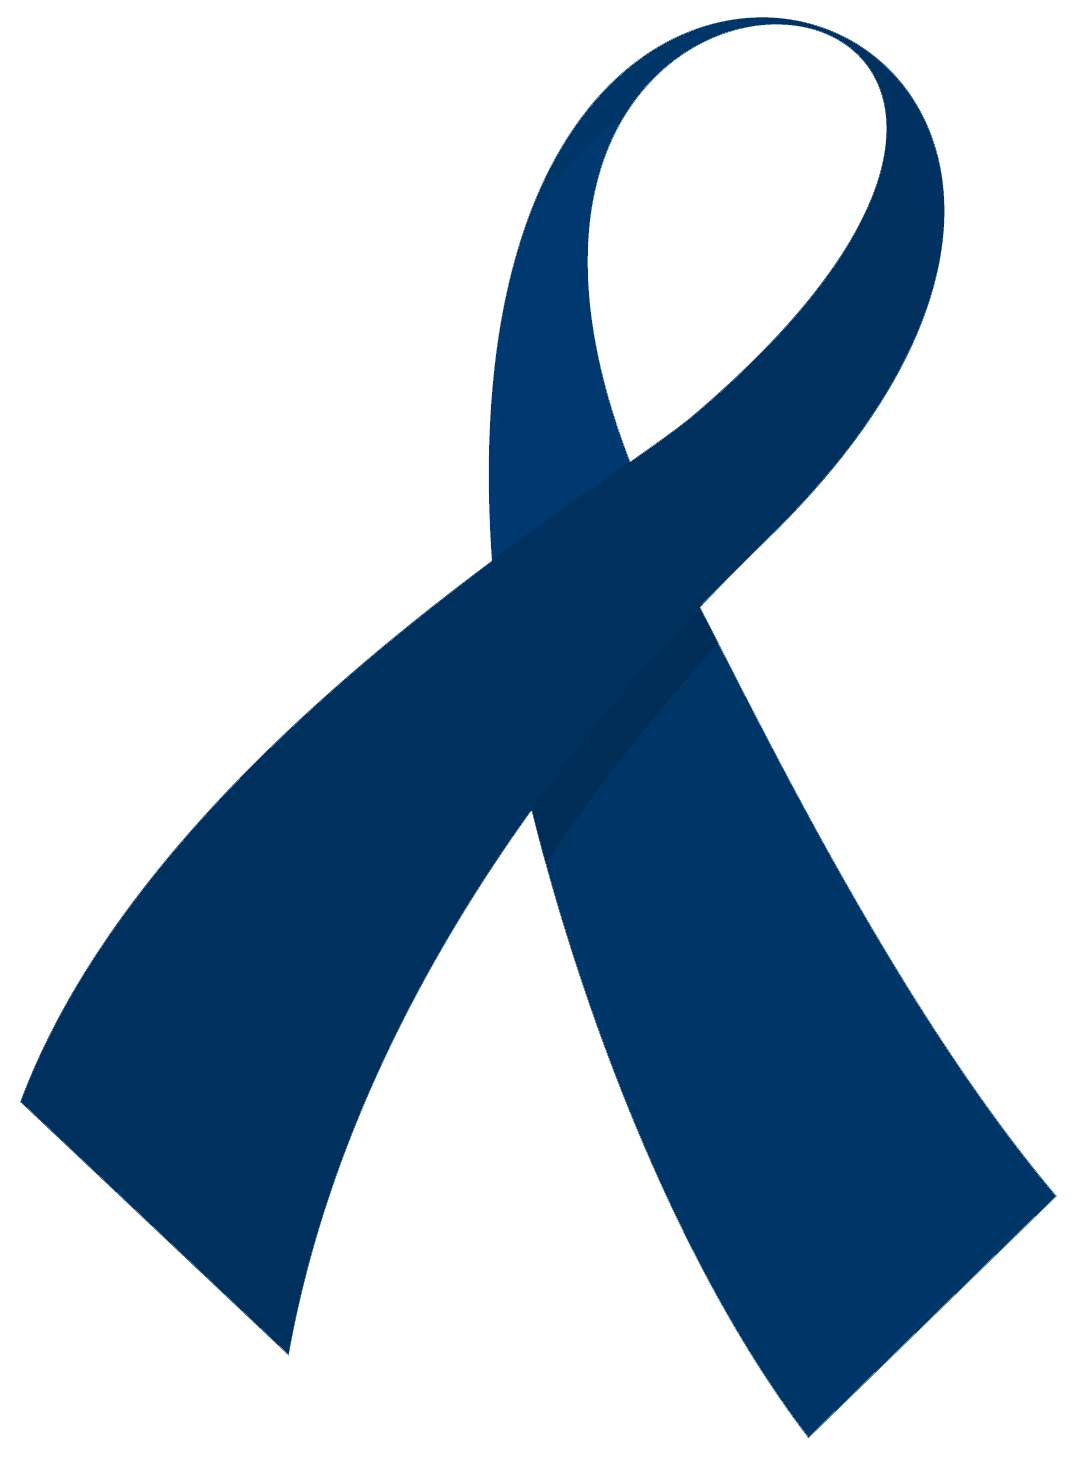 1077x1469 Free Cancer Ribbon Clip Art